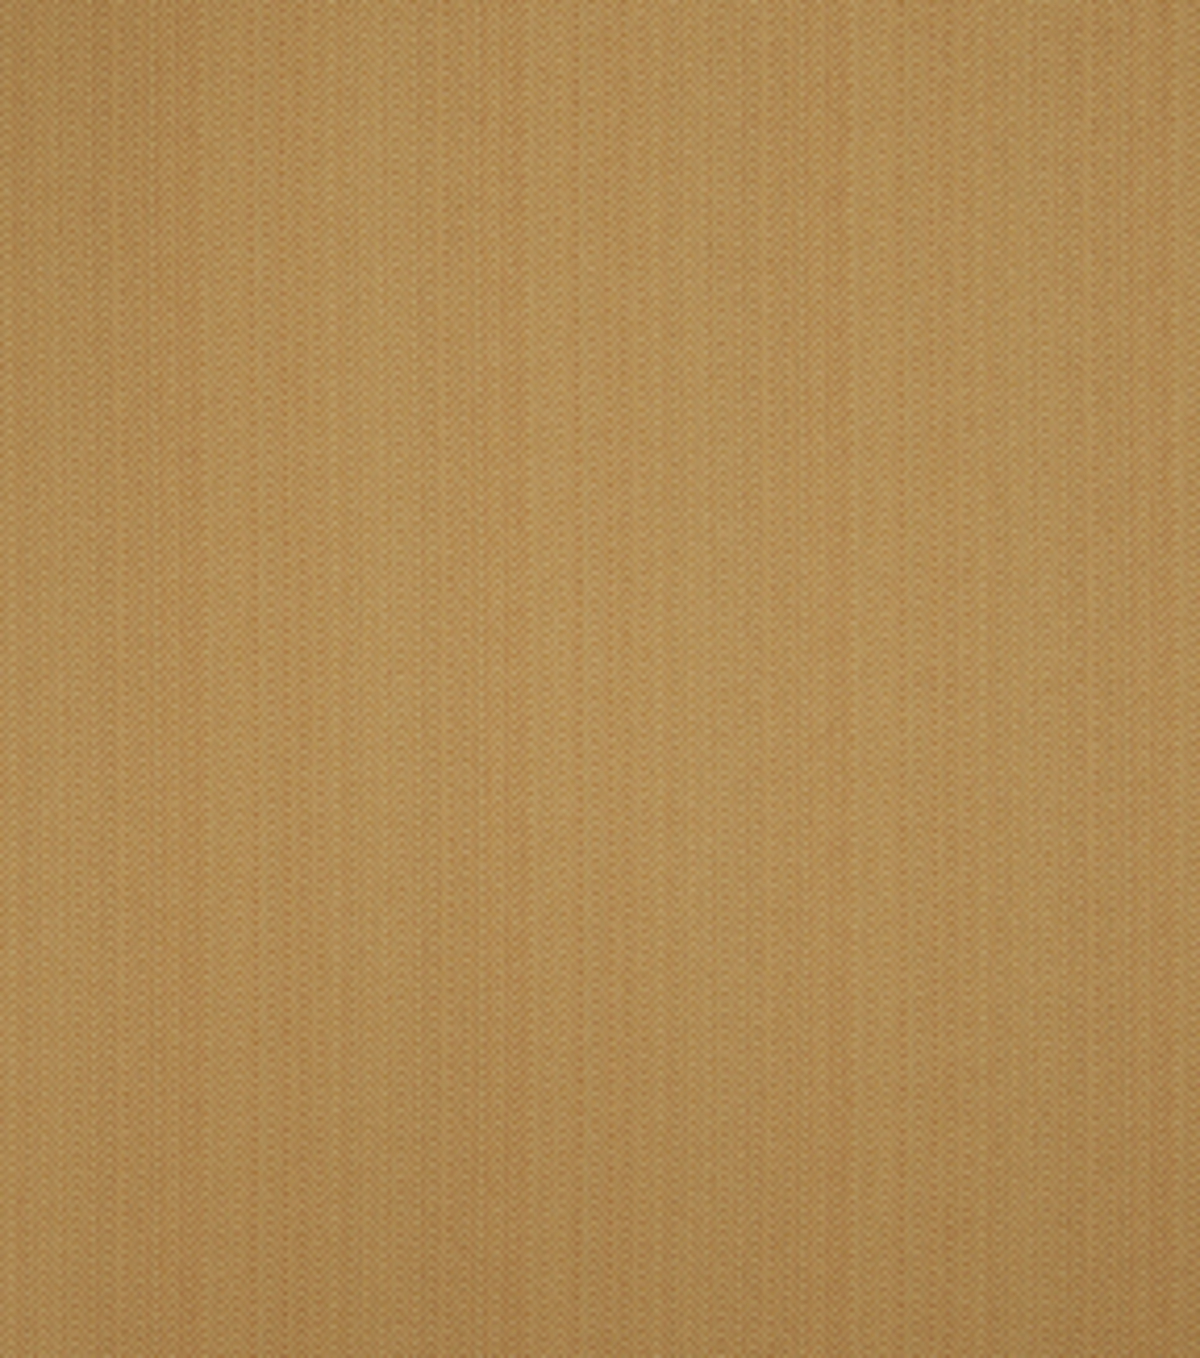 Home Decor 8\u0022x8\u0022 Fabric Swatch-Bella Dura Pure Sunset